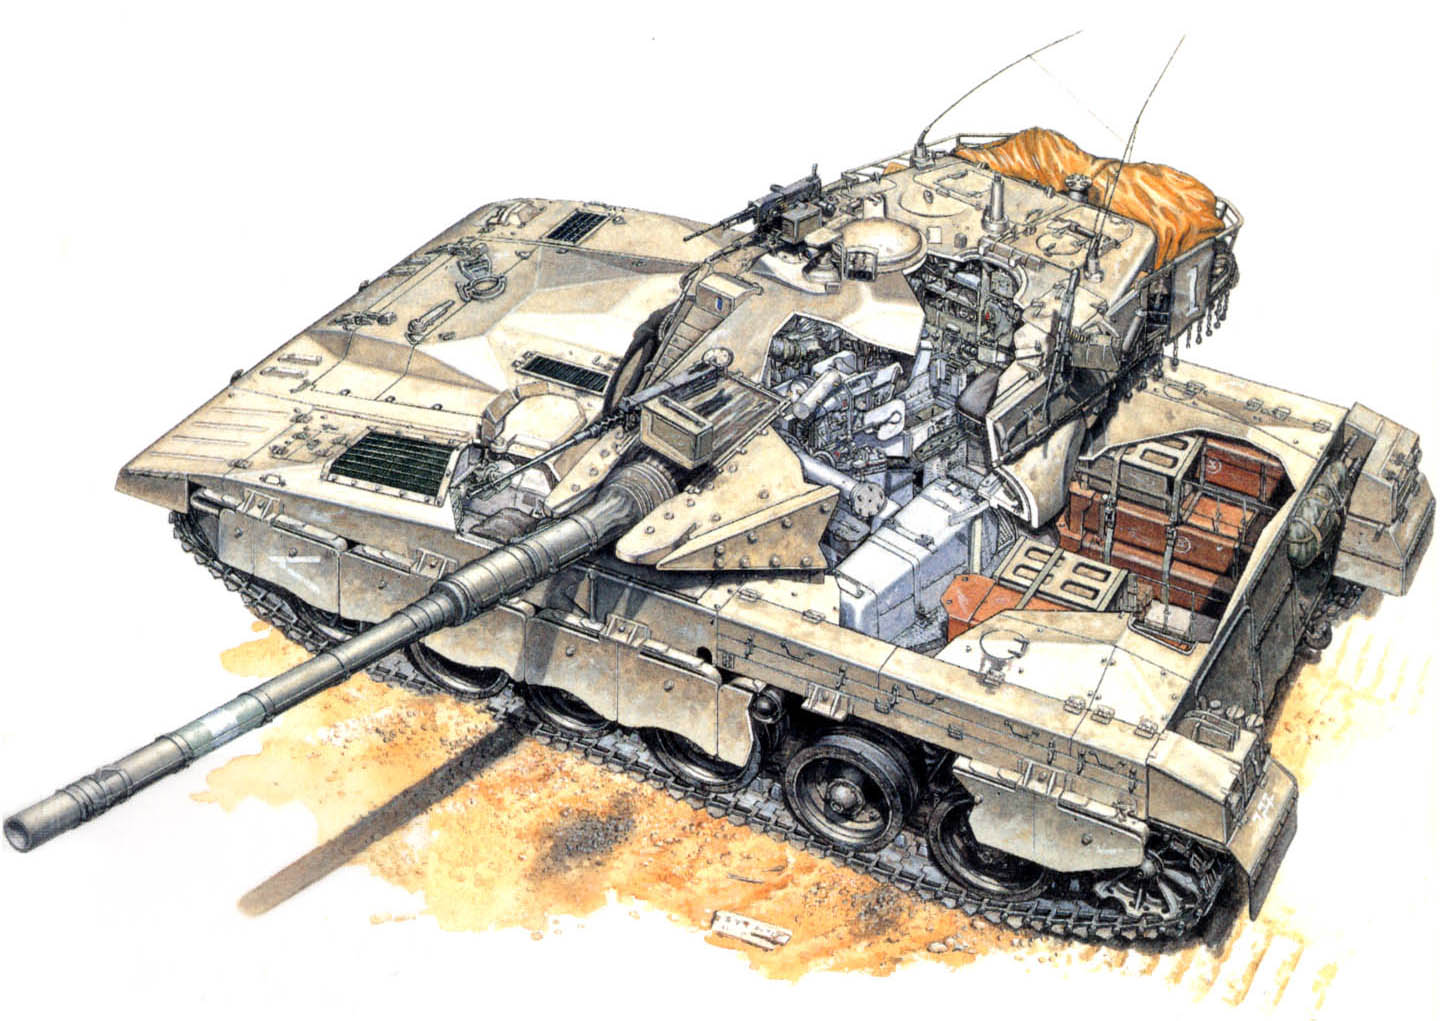 abductions  ufos and nuclear weapons   merkava tank pictures